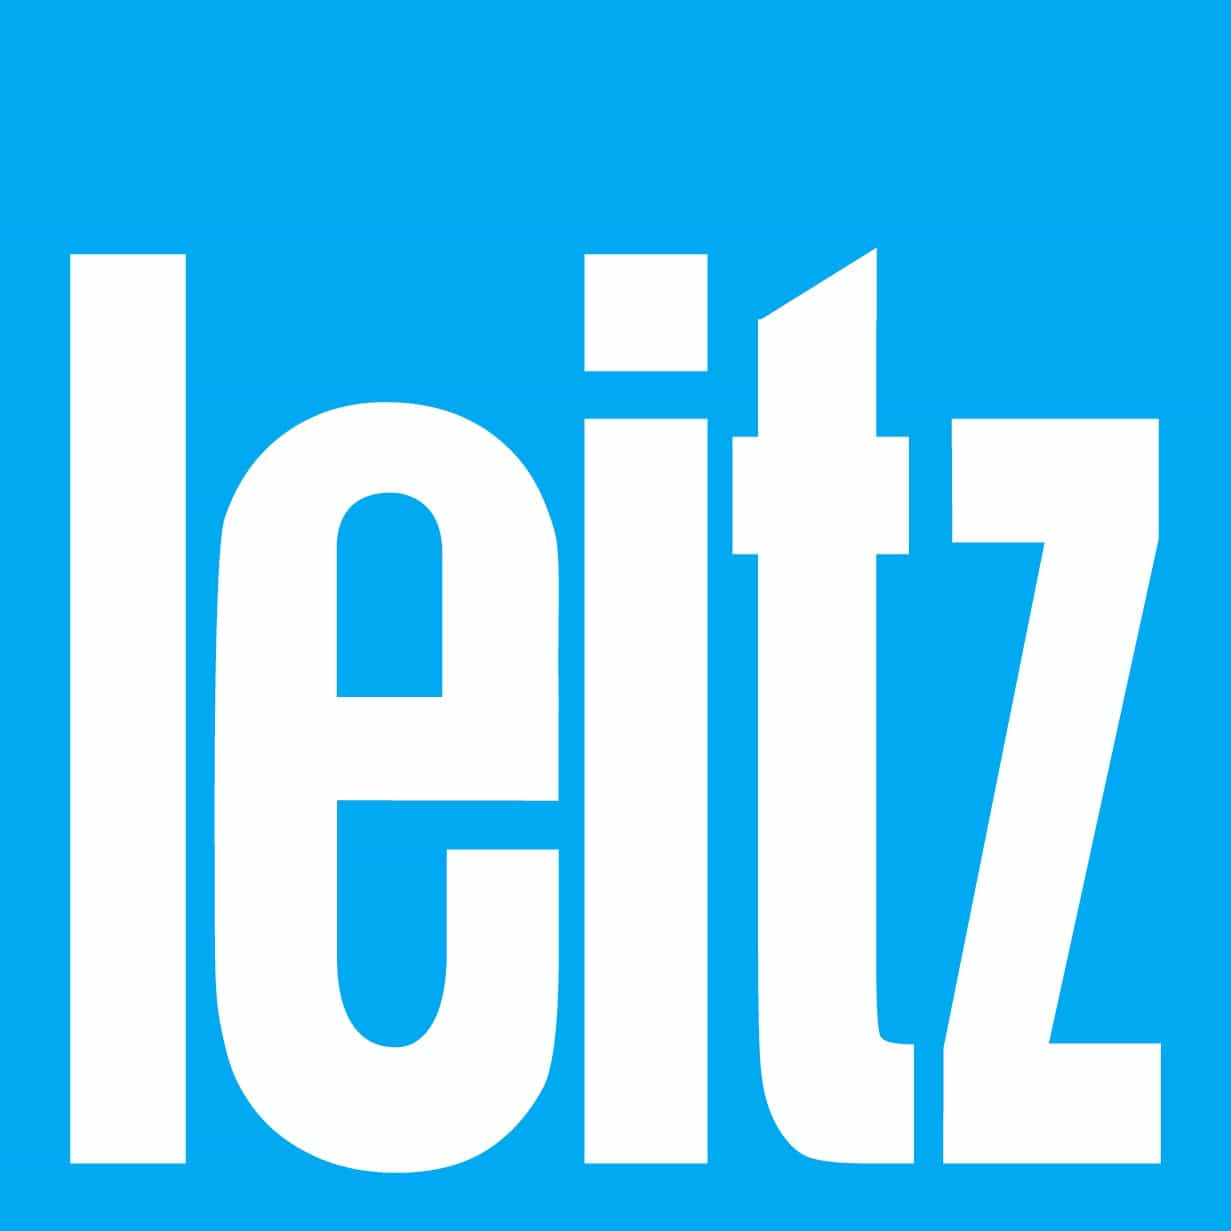 Leitz Tooling Systems Pty Ltd